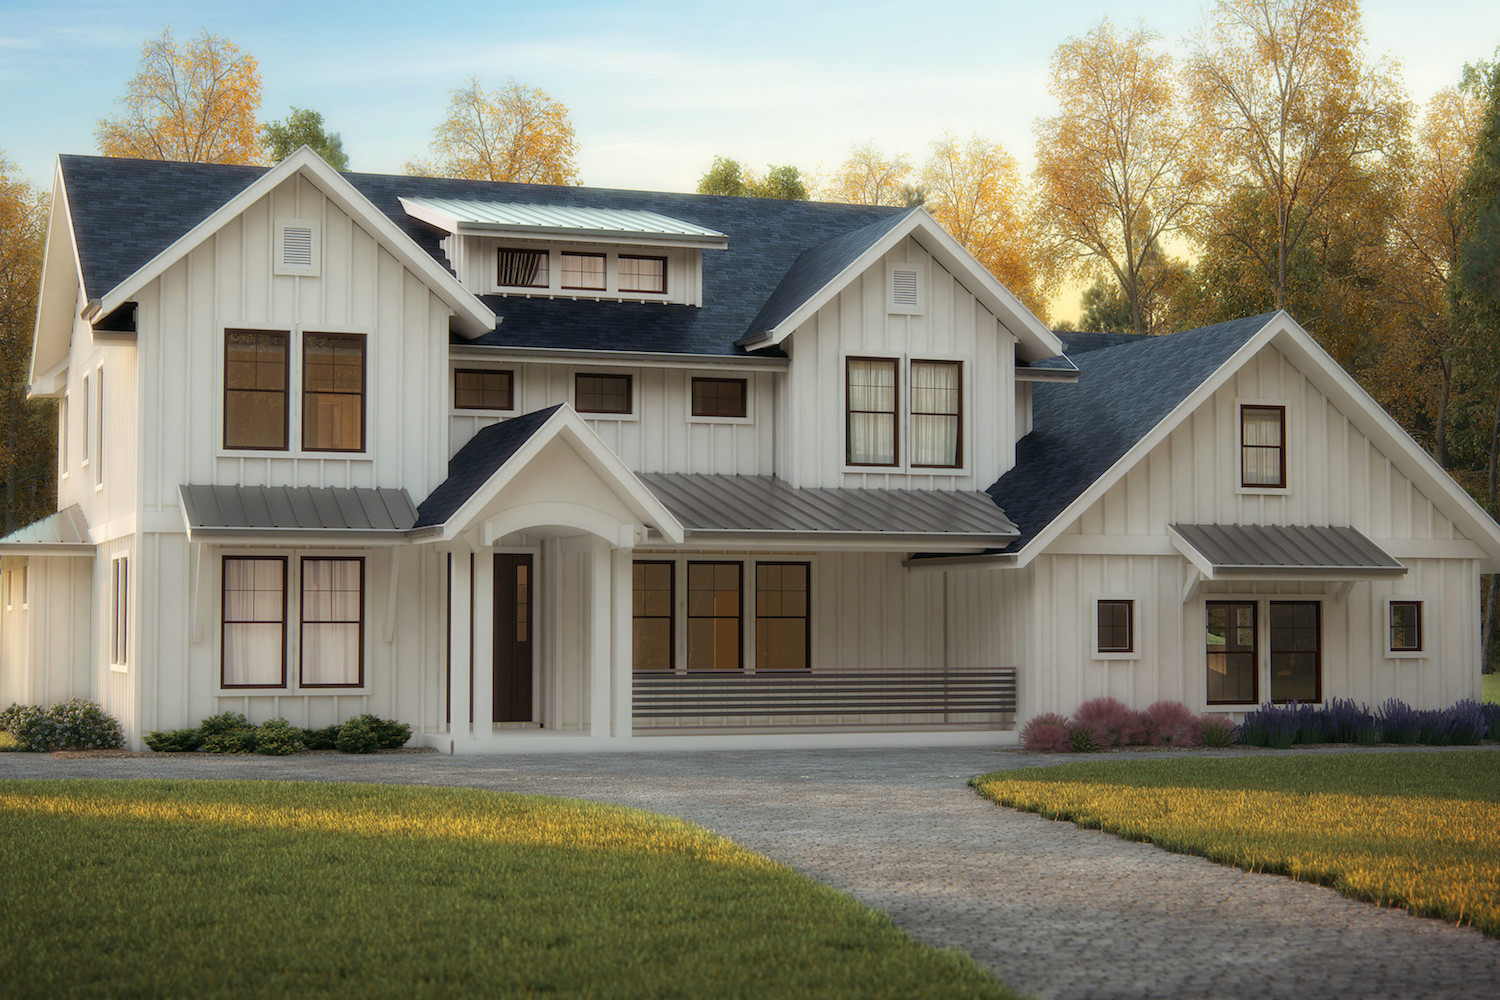 Transitional style house plans a mix of the classic and for House style examples